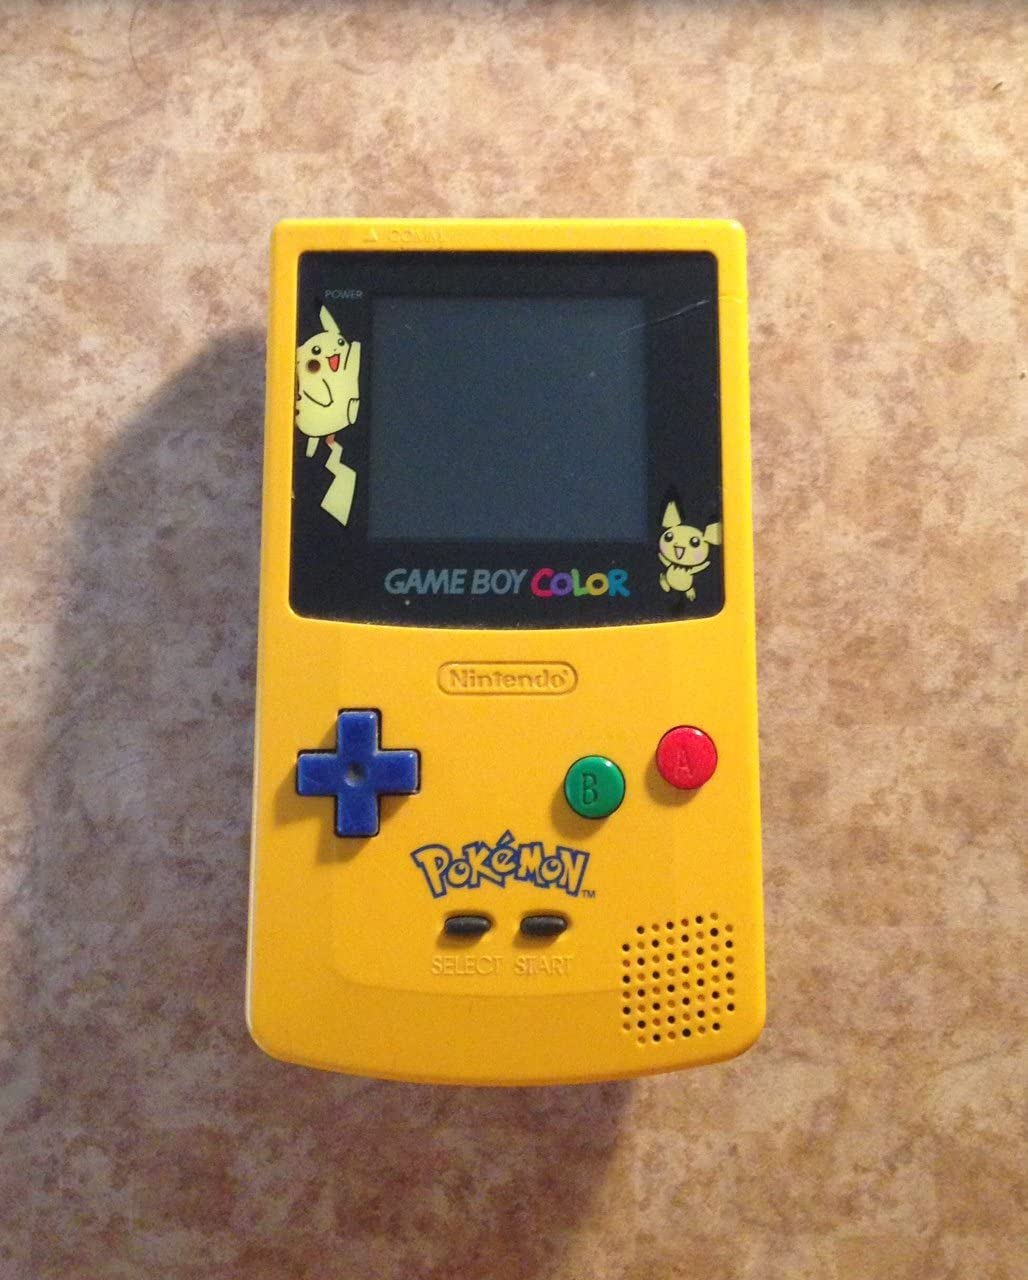 Game boy color kaufen - Game Boy Color Limited Pokemon Edition Yellow